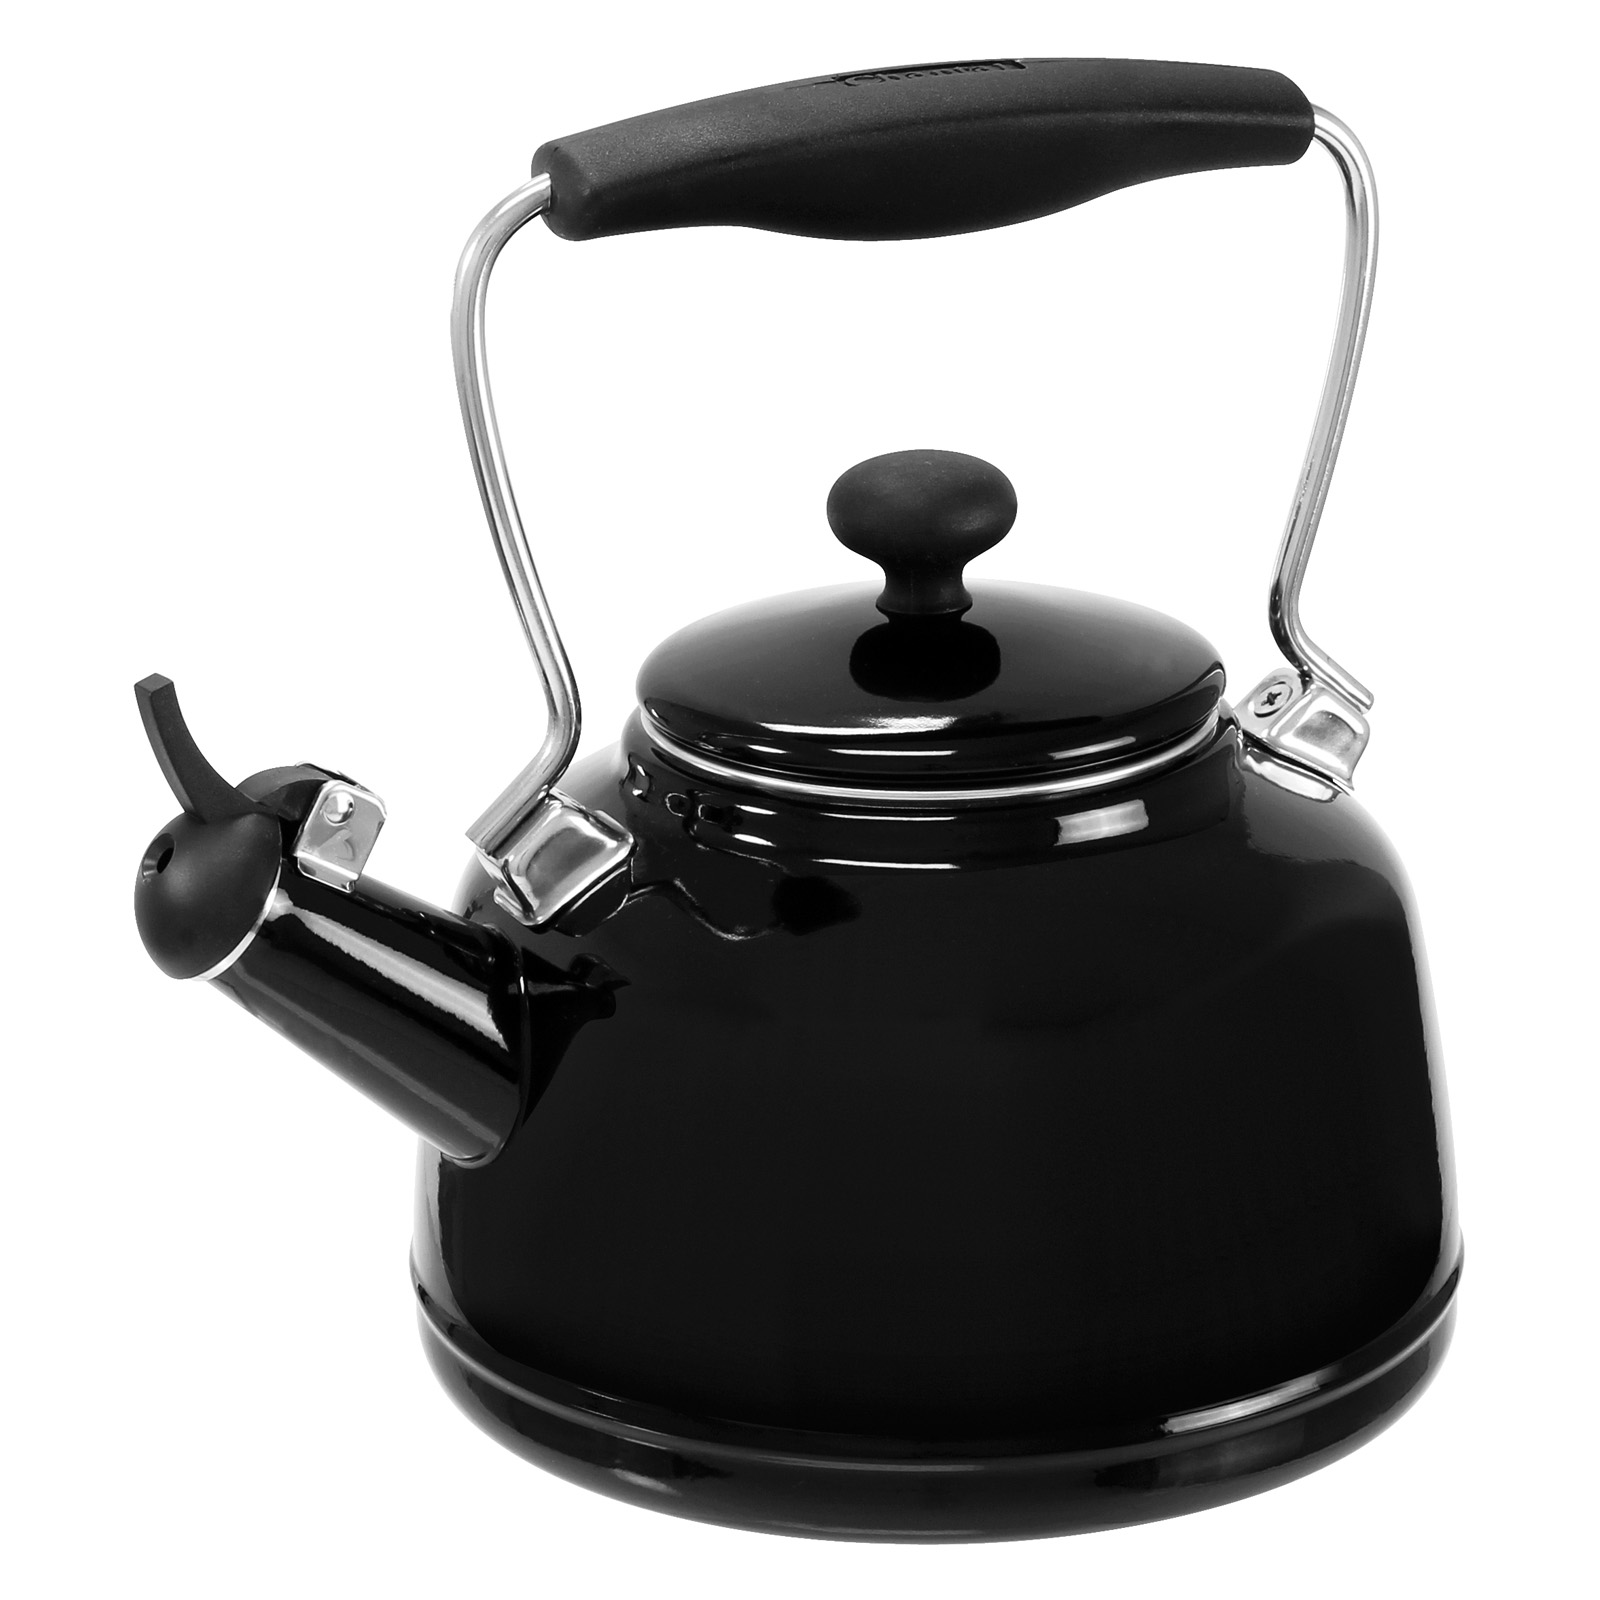 Chantal vintage tea kettle tea kettles at hayneedle - Chantal teapots ...